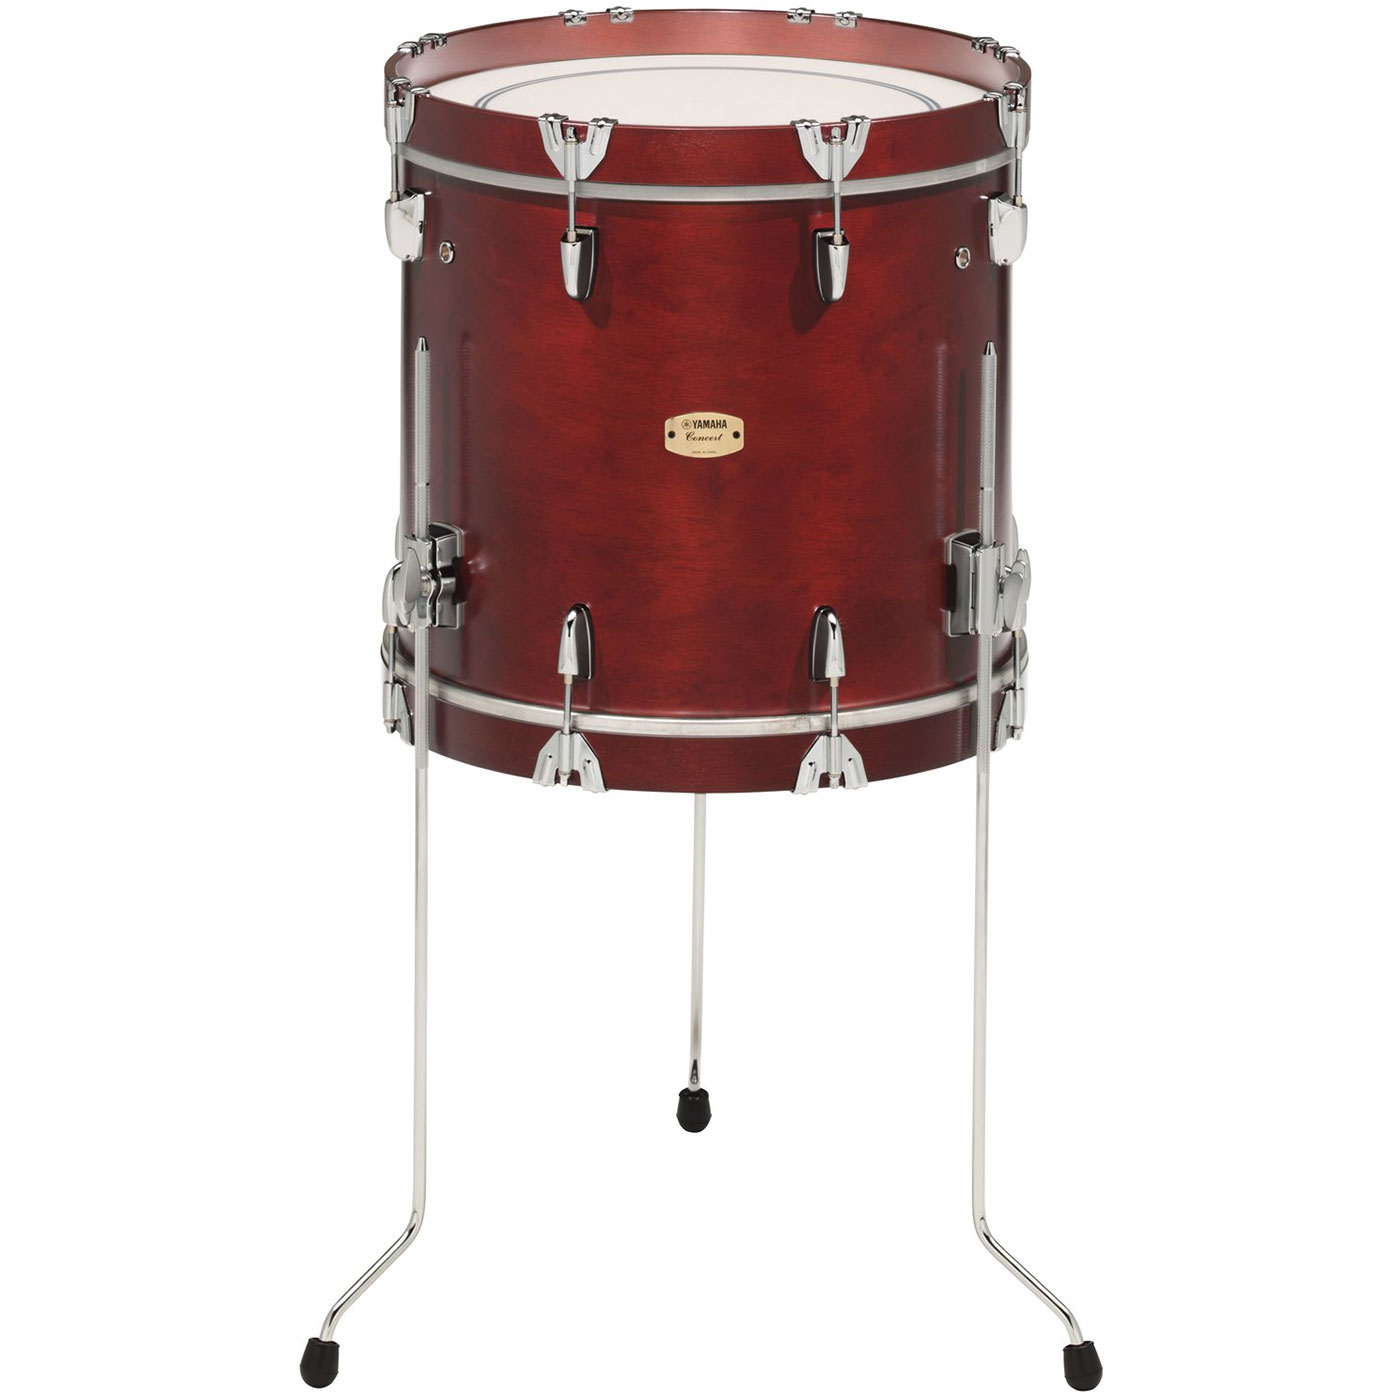 "Yamaha 18"" x 16"" 9000 Series Impact Drum in Darkwood Stain"